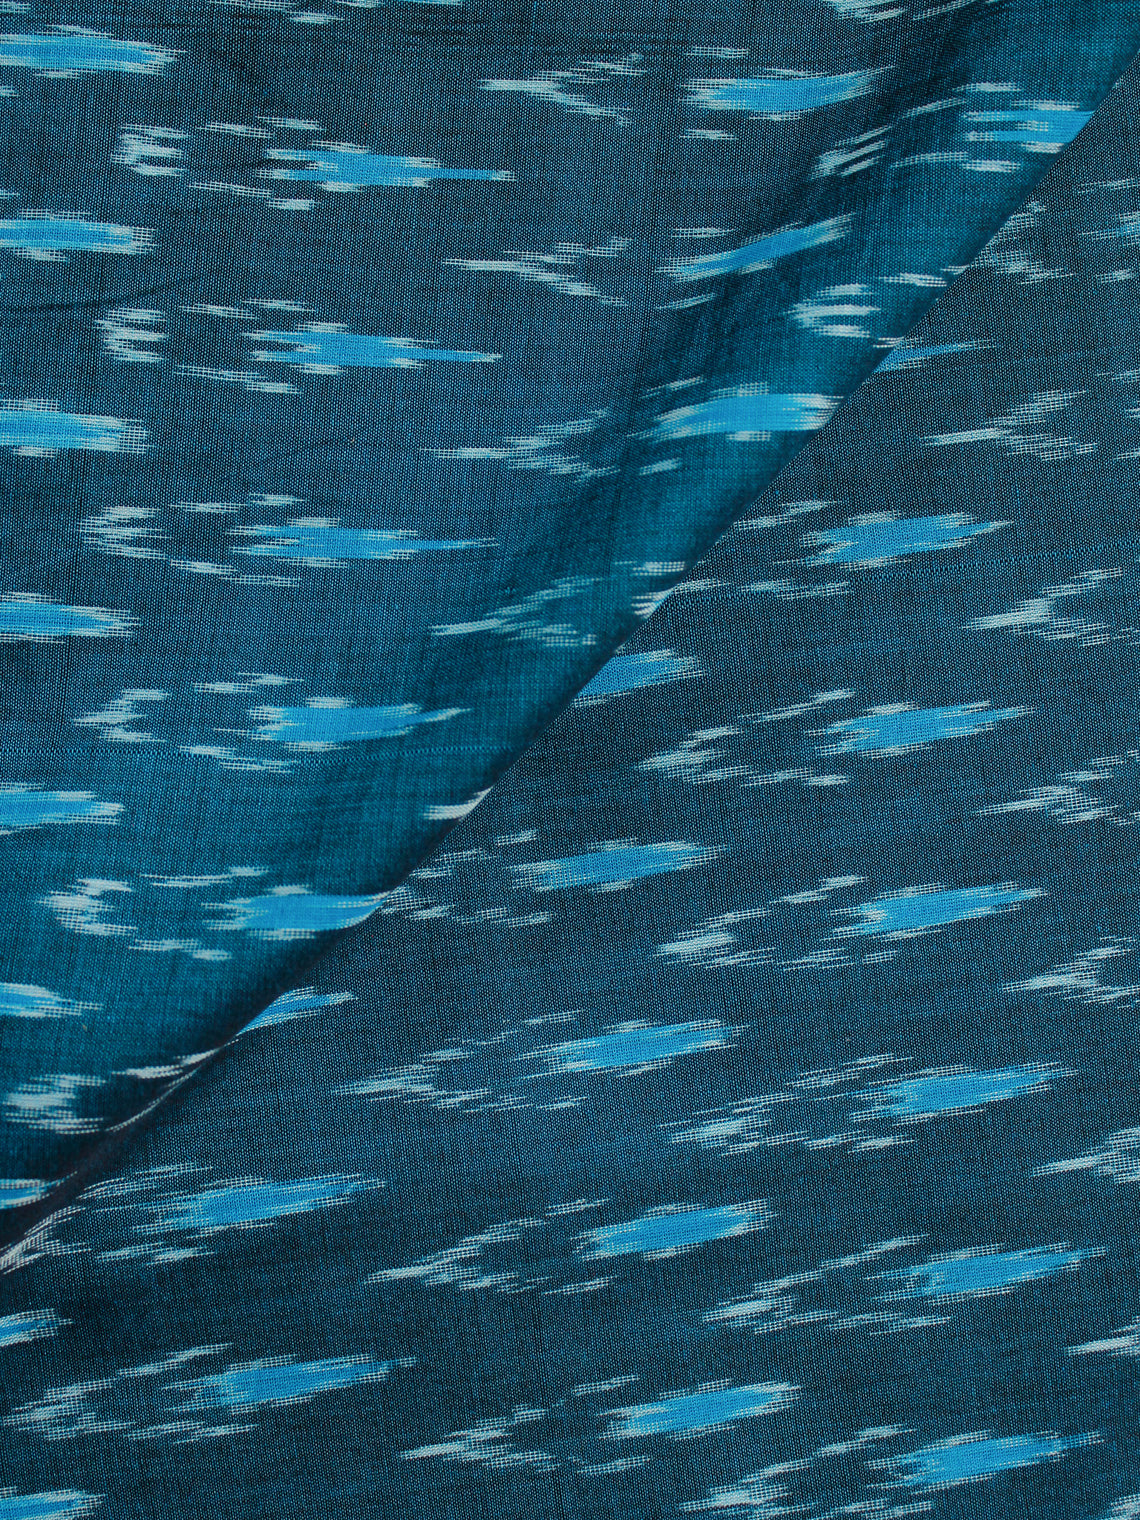 Teal Blue Ivory Pochampally Hand Weaved Ikat Mercerised Cotton Fabric Per Meter - F002F1964